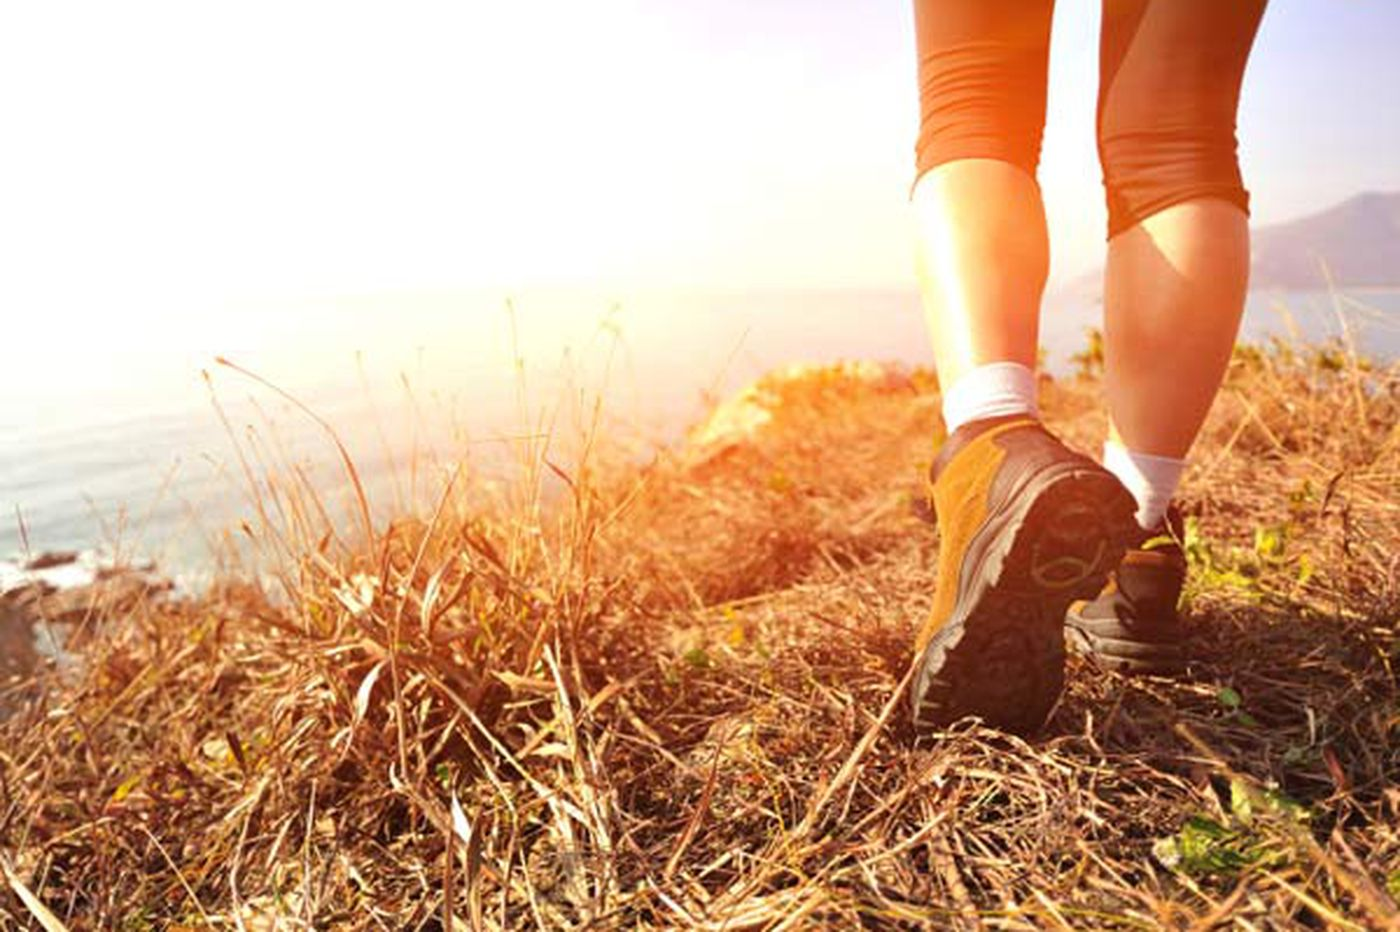 Well Being: Hiking adds clarity, adventure to life